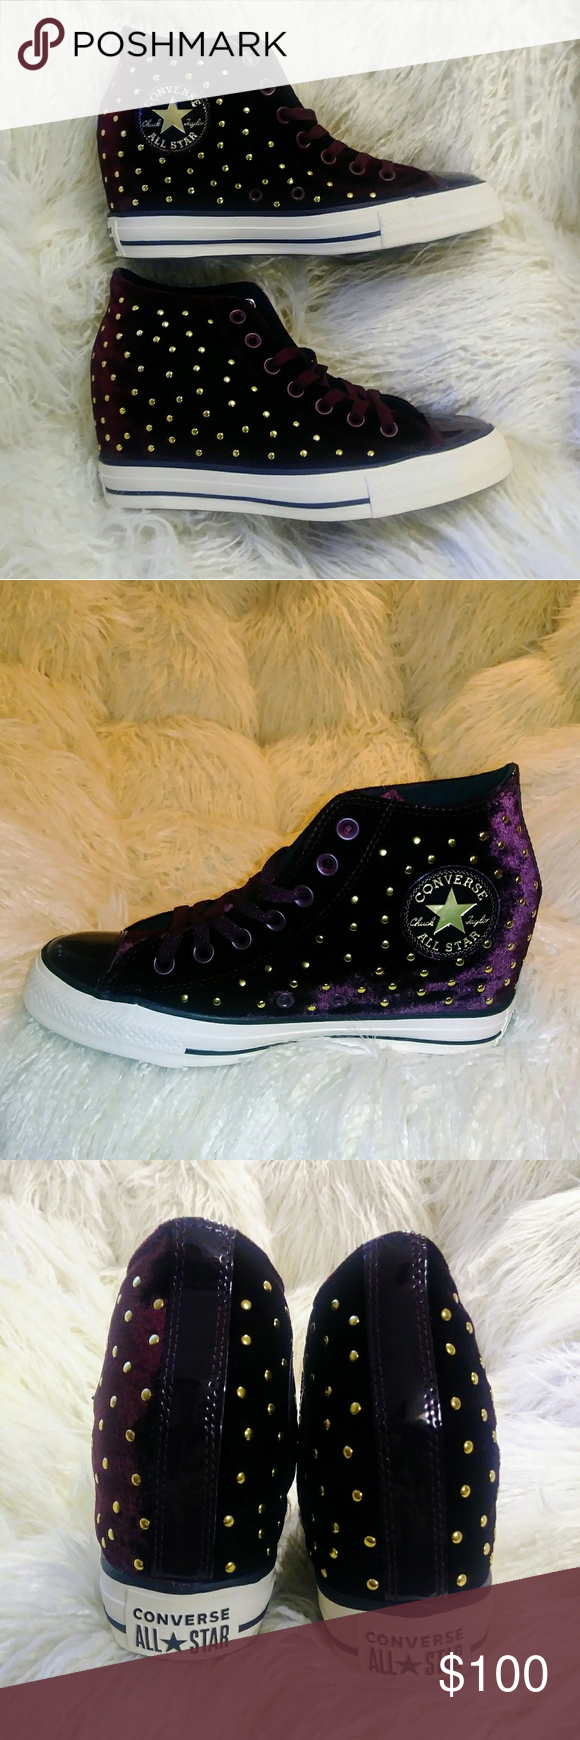 78969dd7c518 NWT Converse Chuck Taylor Lux Wedges Bootie Velvet - So sexy!!!! -